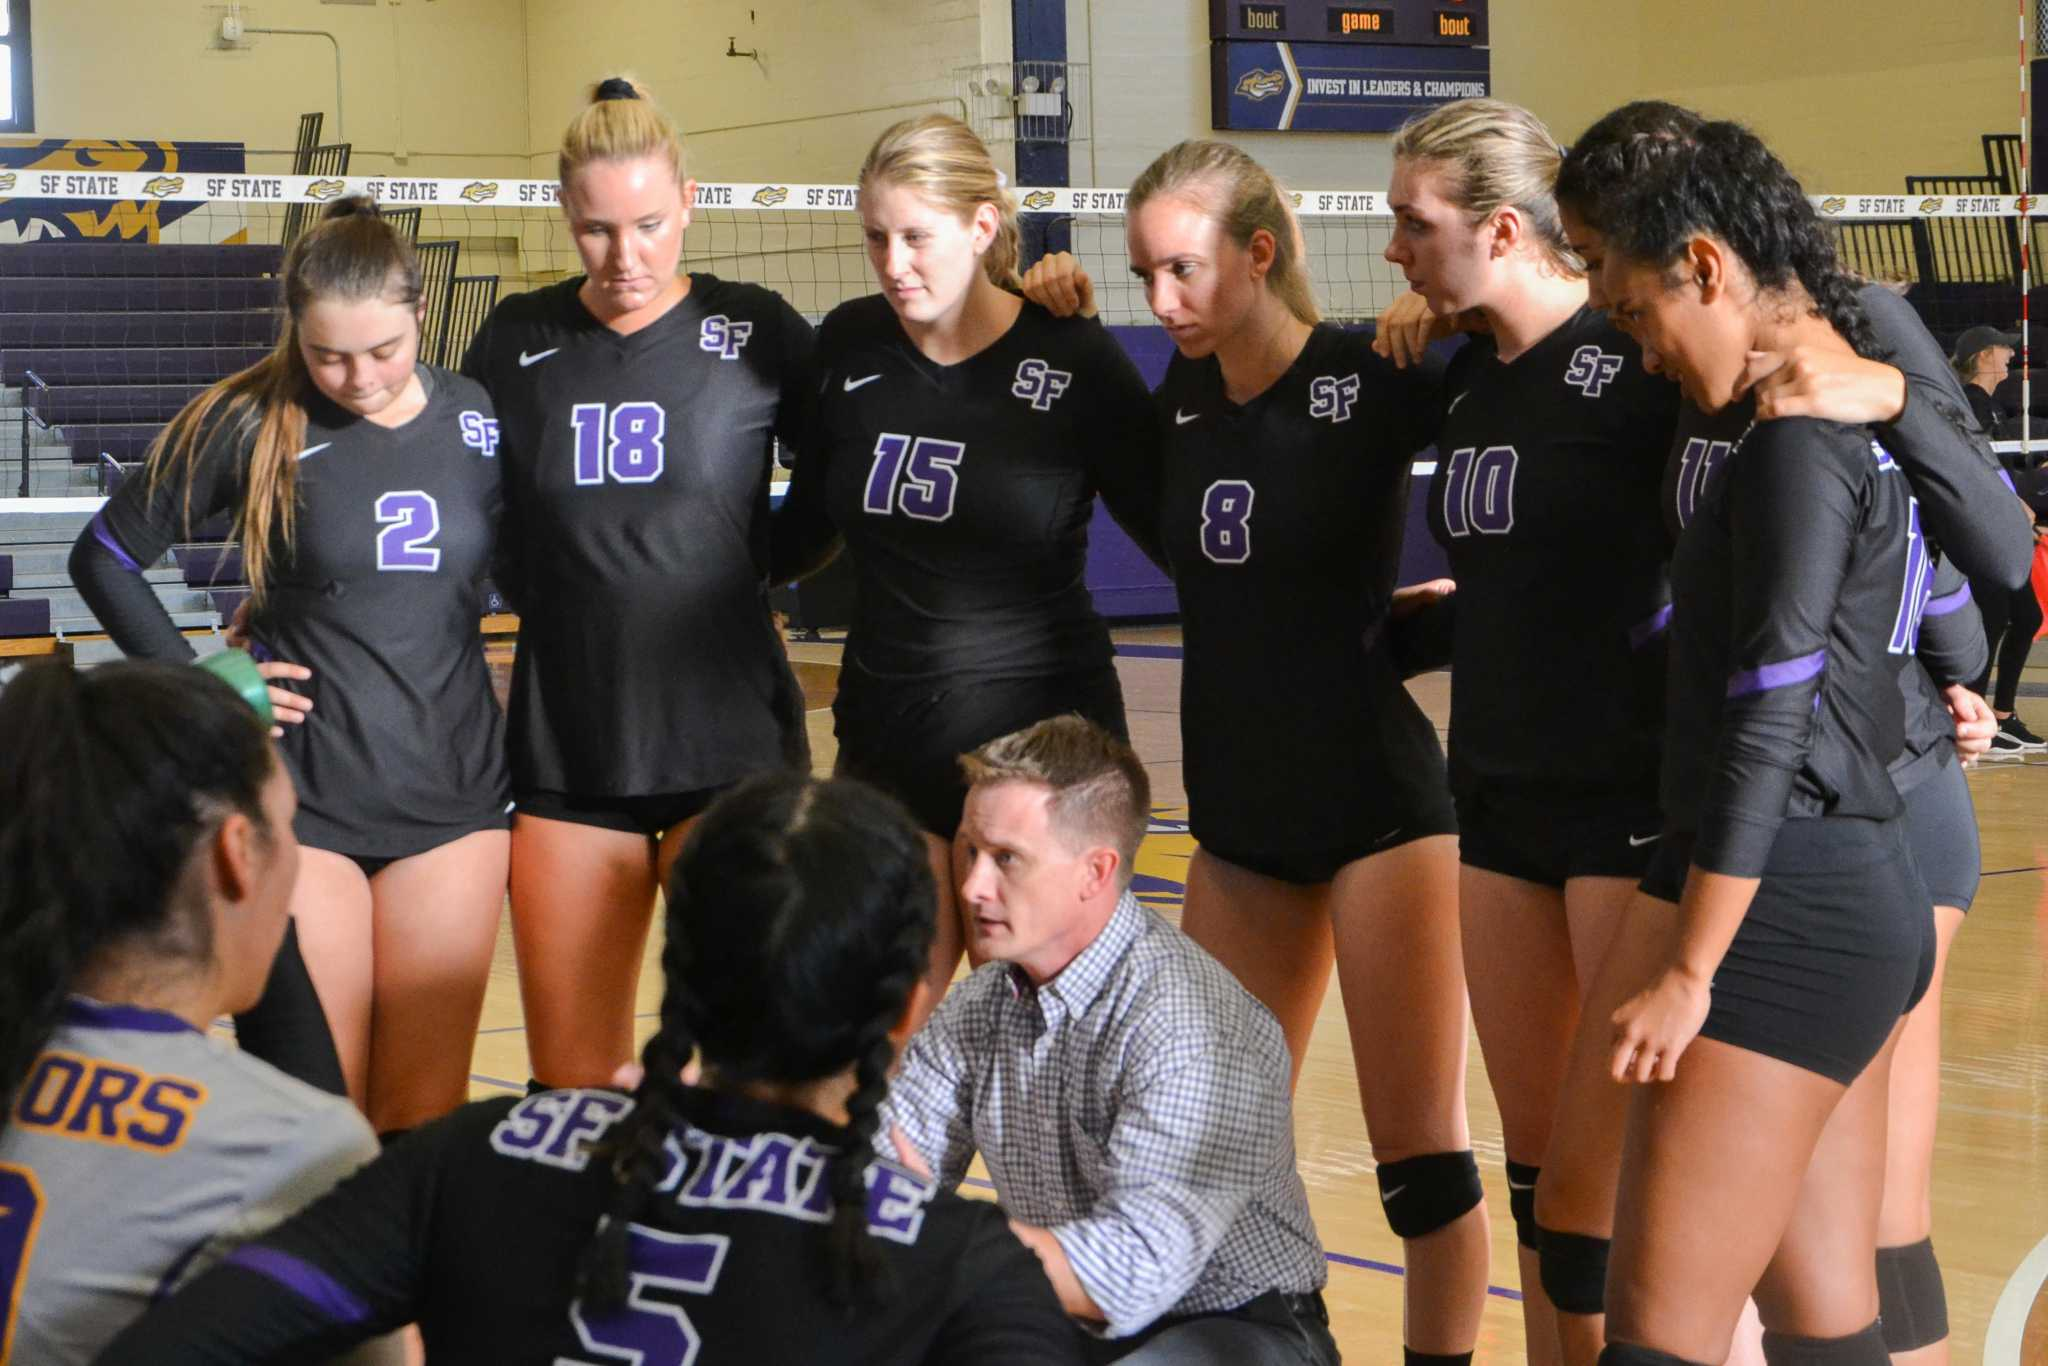 The SF State women's volleyball huddles during an opening game against Dominican University held in the gymnasium at SF State on Thursday, August 31, 2017. The SF Gators defeated the Dominican University Penguins 3-1. (Cristabell Fierros/Golden Gate Xpress)